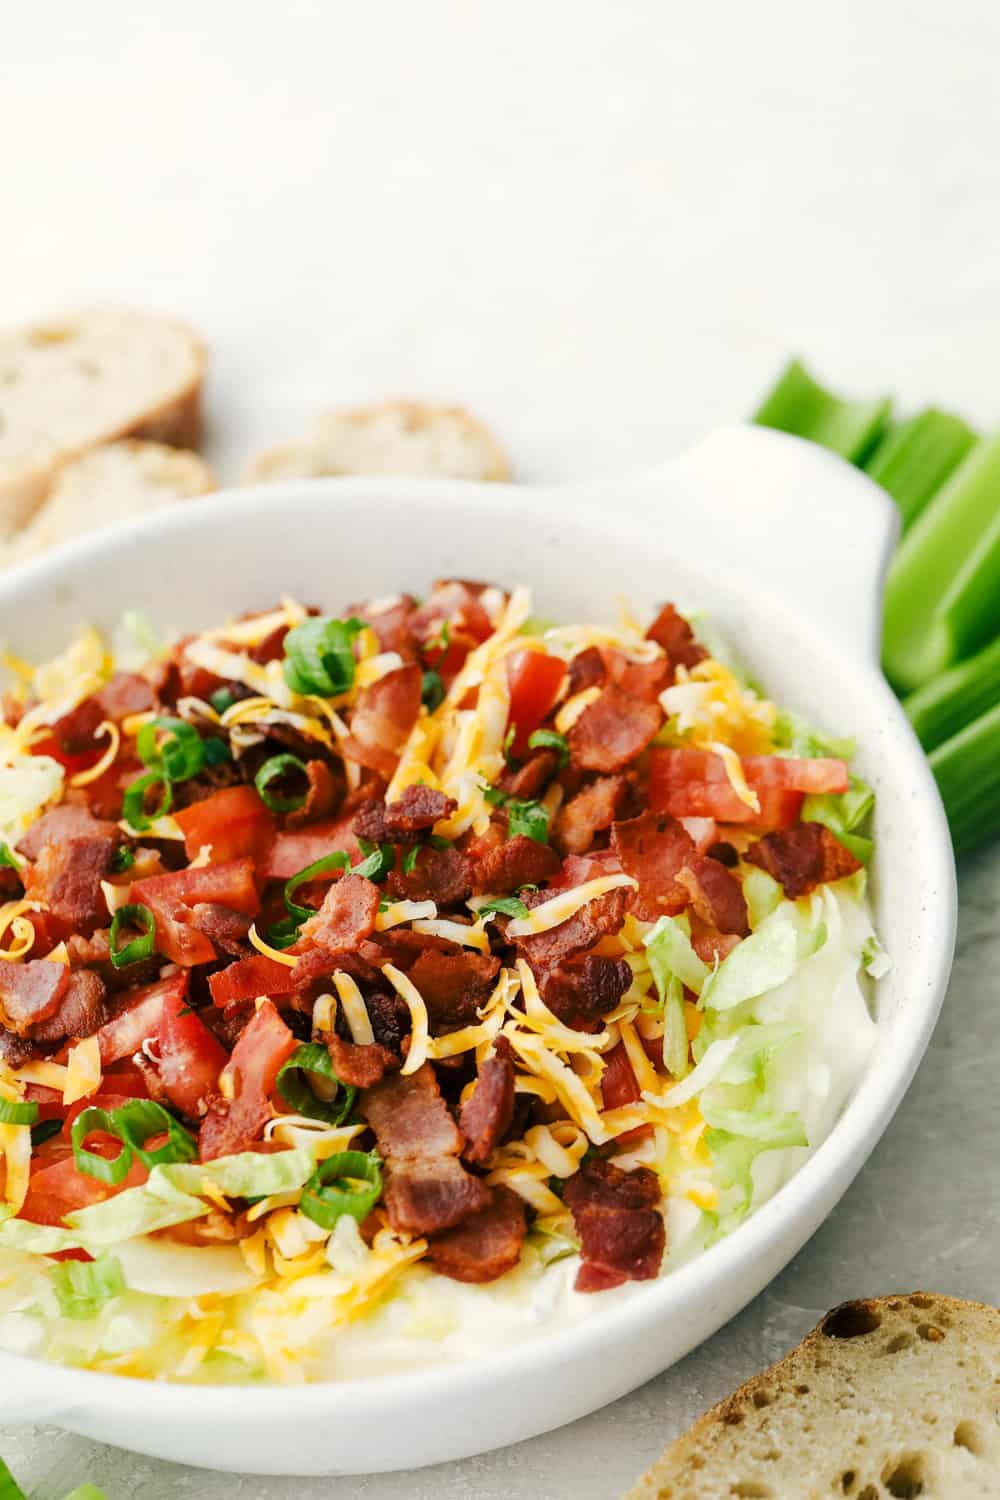 The finished BLT dip in a white bowl with options for dipping.